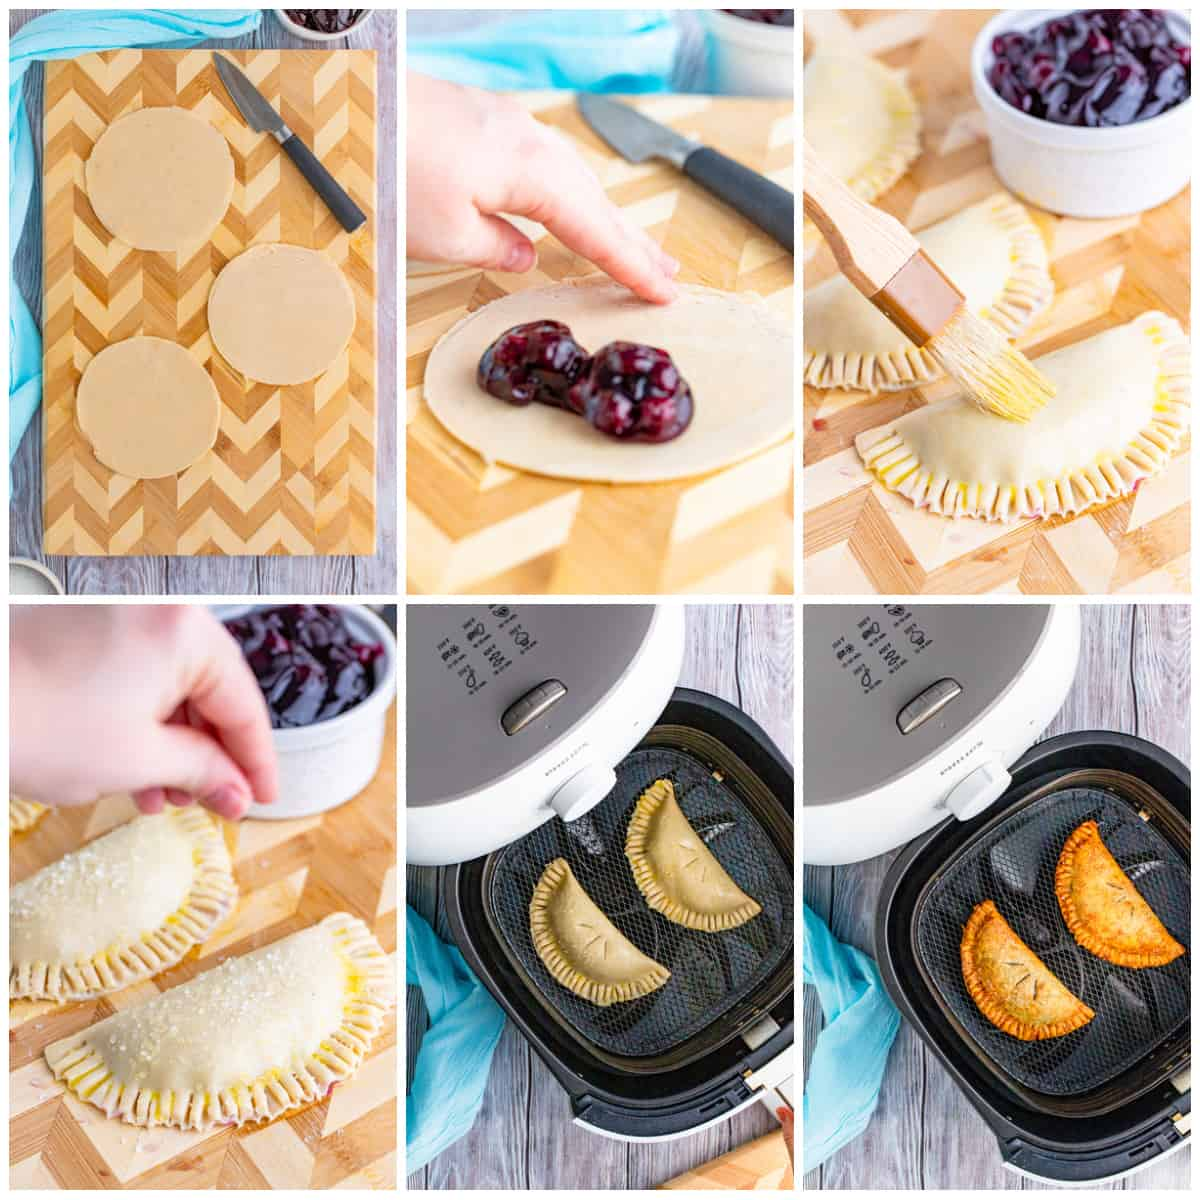 Step by step photos on how to make Air Fryer Blueberry Hand Pies